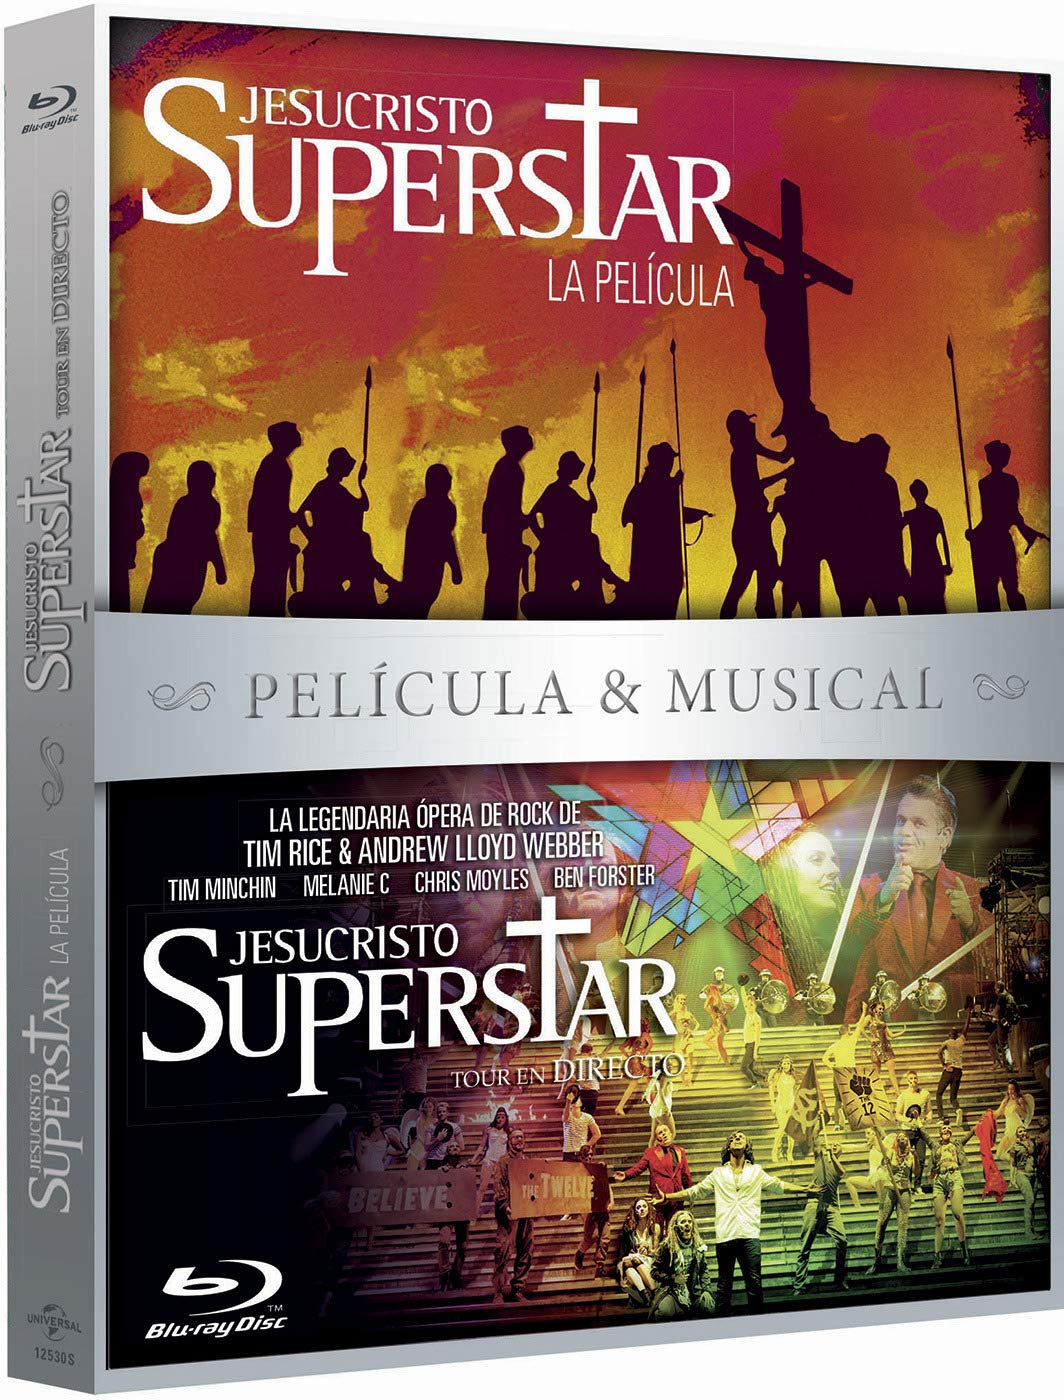 Pack: Jesucristo Superstar Pelicula + Musical BD Blu-ray: Amazon.es: Ted Neeley, Carl Anderson, Yvonne Elliman, Barry Dennen, Norman Jewison, Ted Neeley, Carl Anderson, Universal Pictures: Cine y Series TV